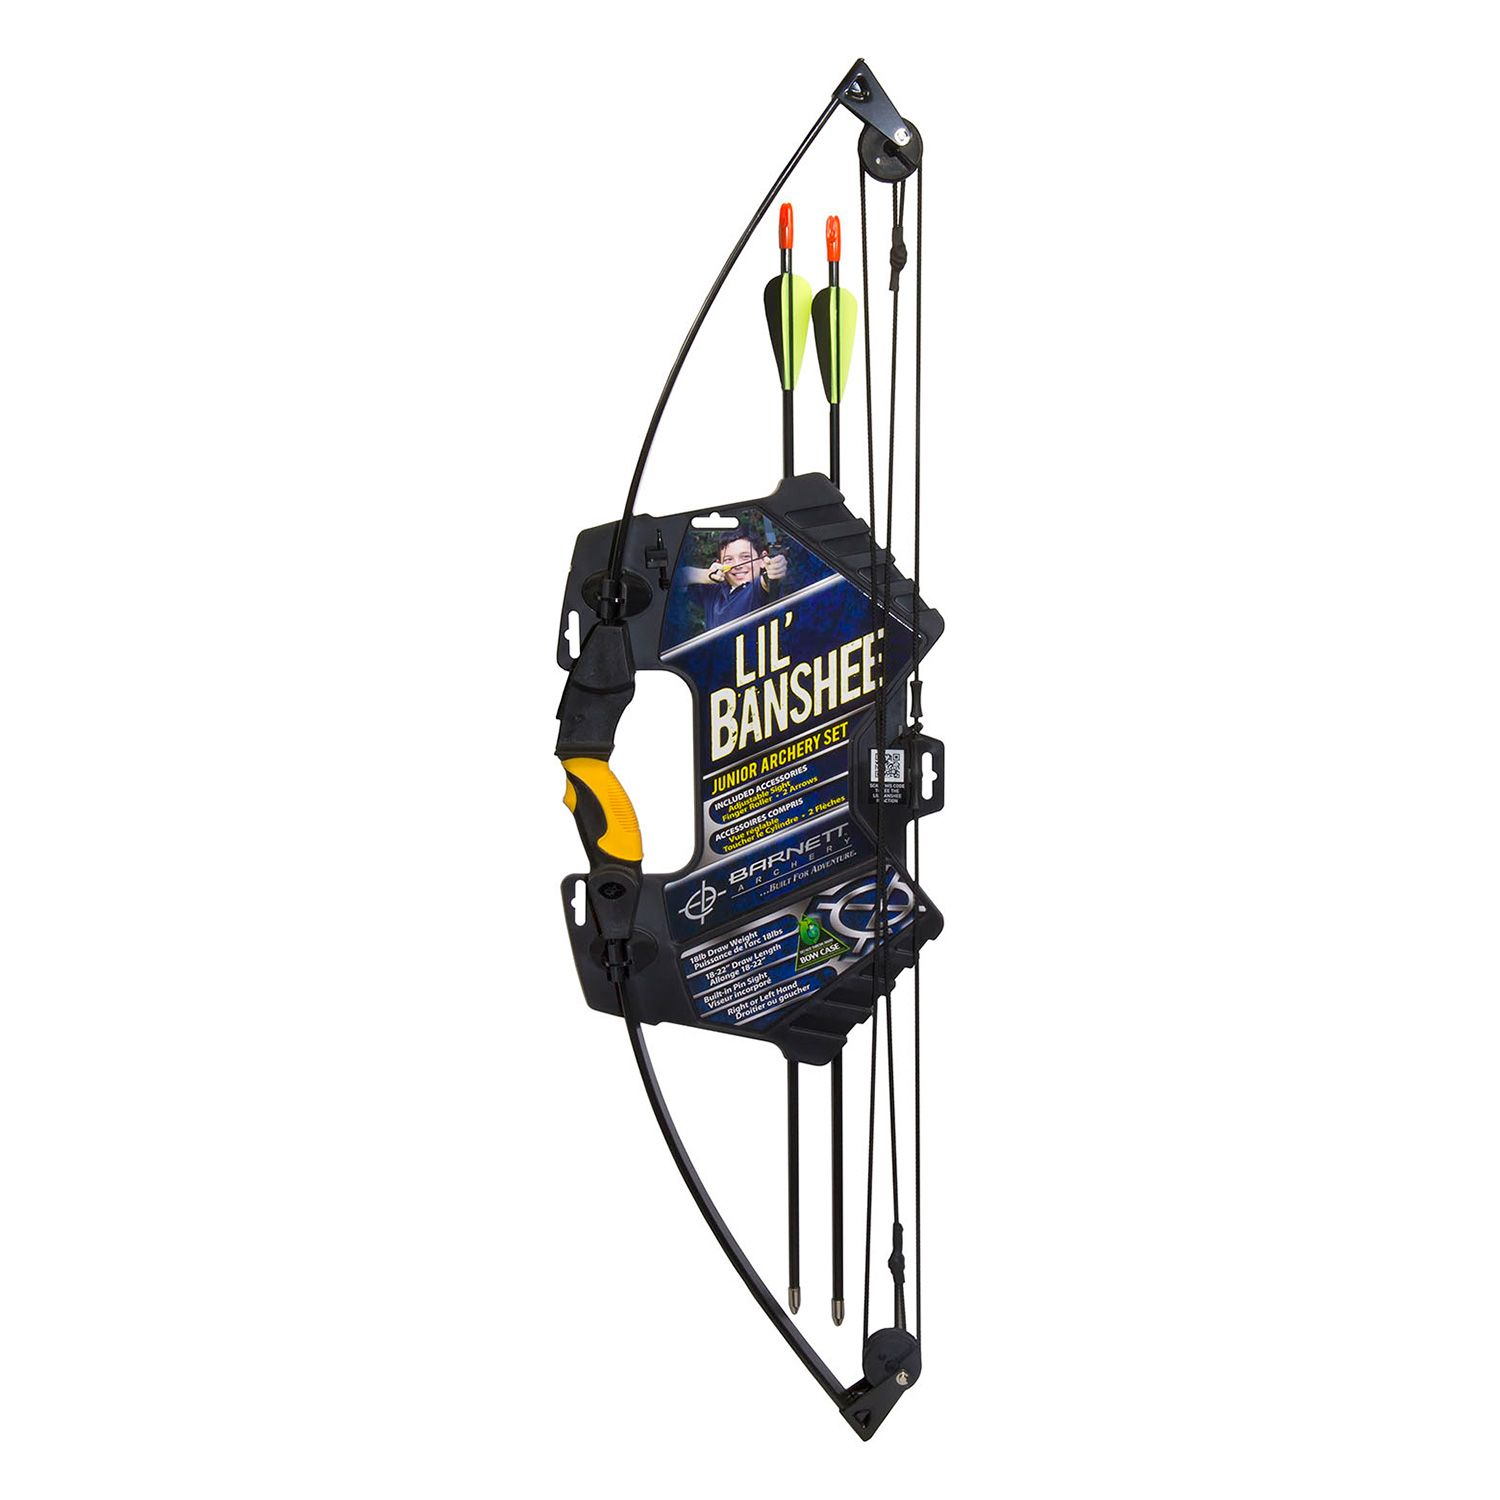 Barnett Lil Banshee Jr. Compound Archery Set